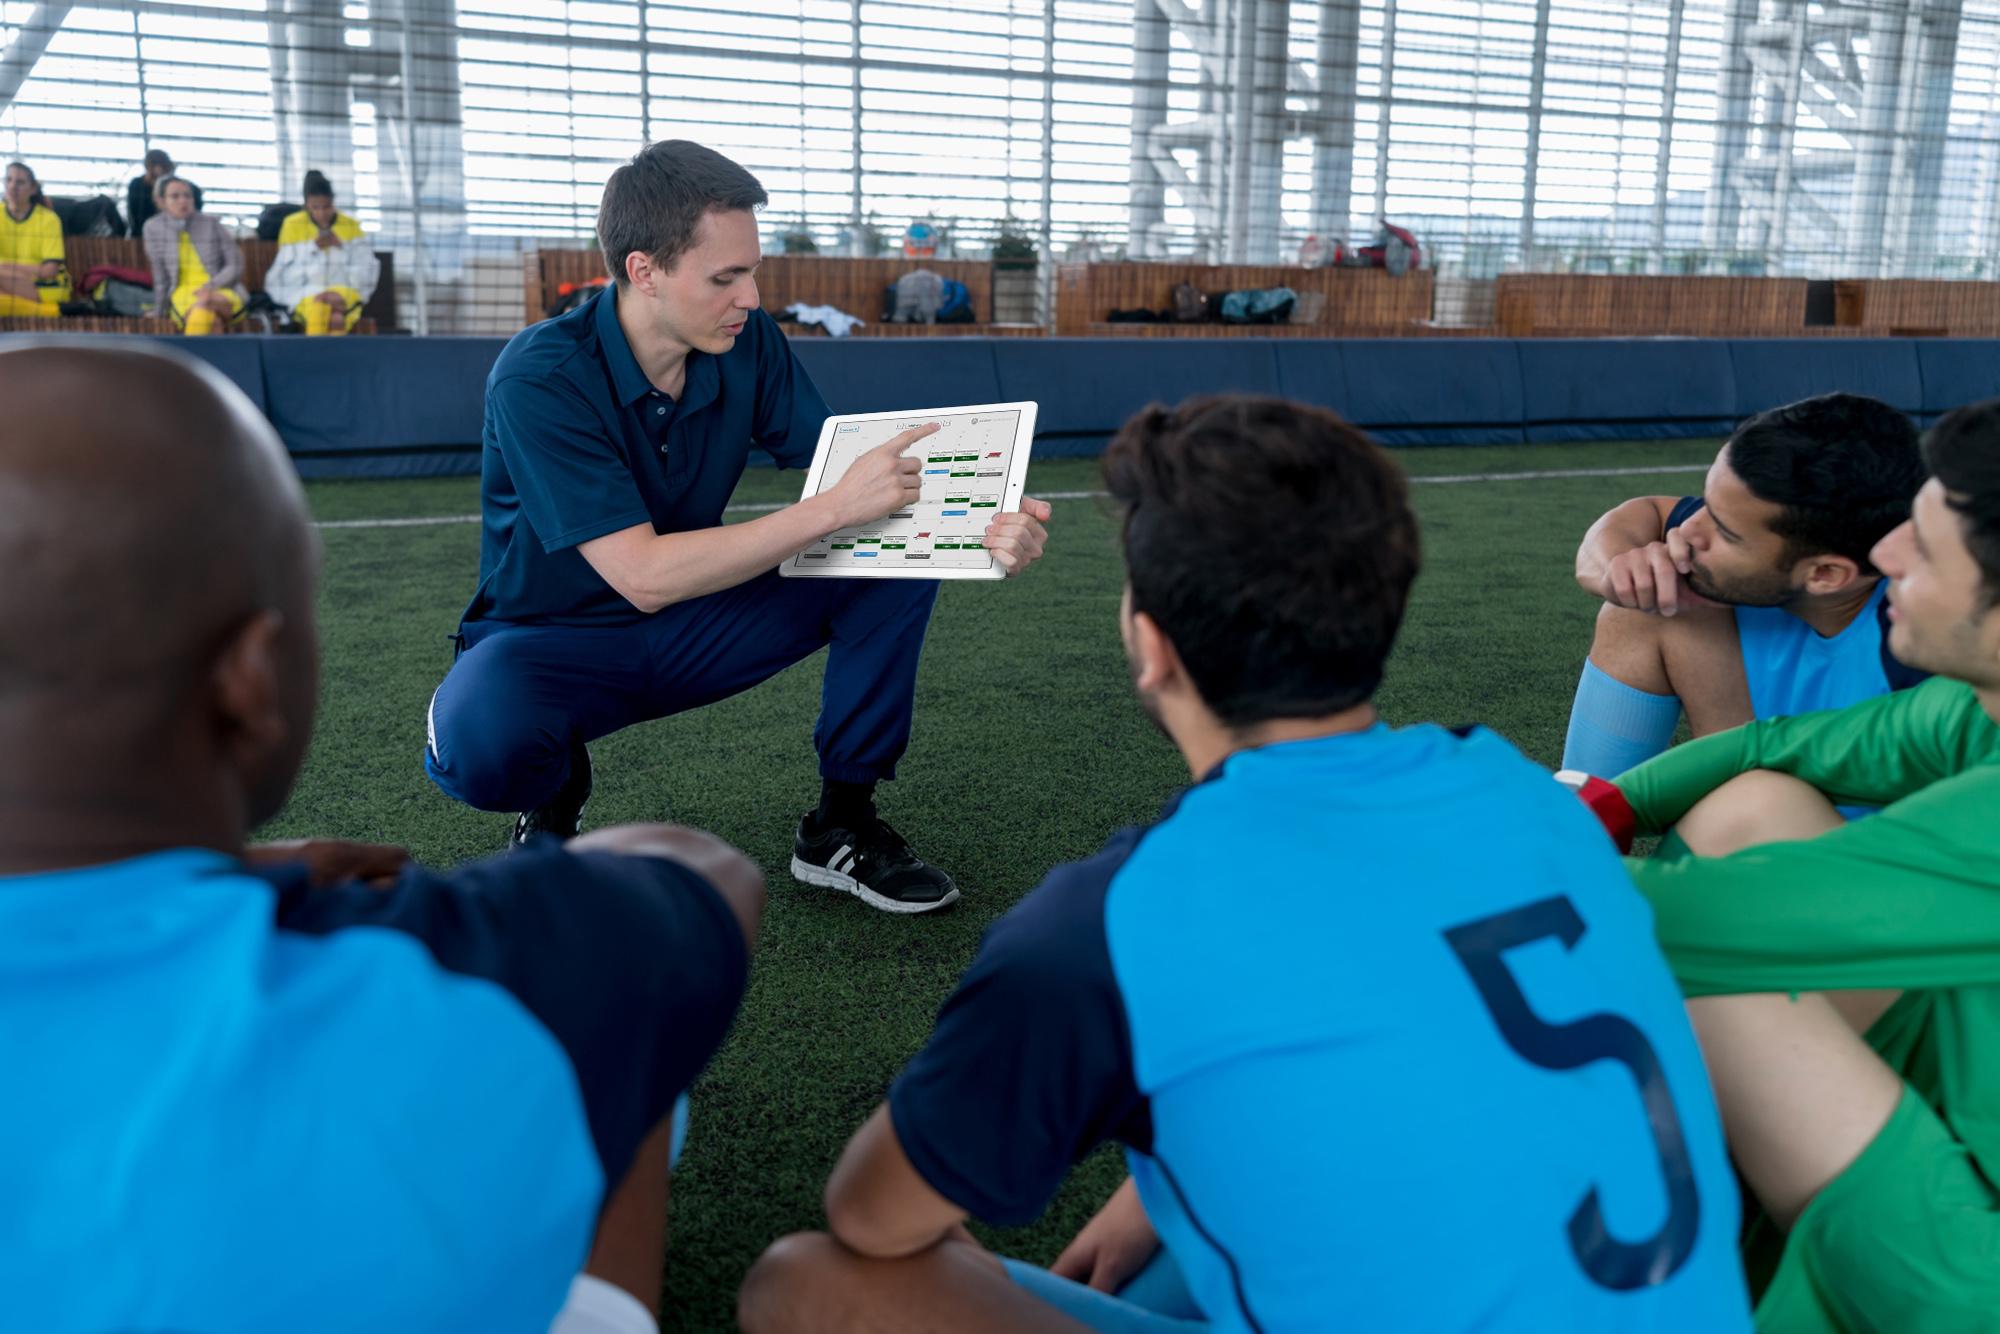 Communication - Have a clearer form of communication with your players. Each player has access to your teams planner, providing access to their schedule, session plans, training and match footage, developmental reports and much more.